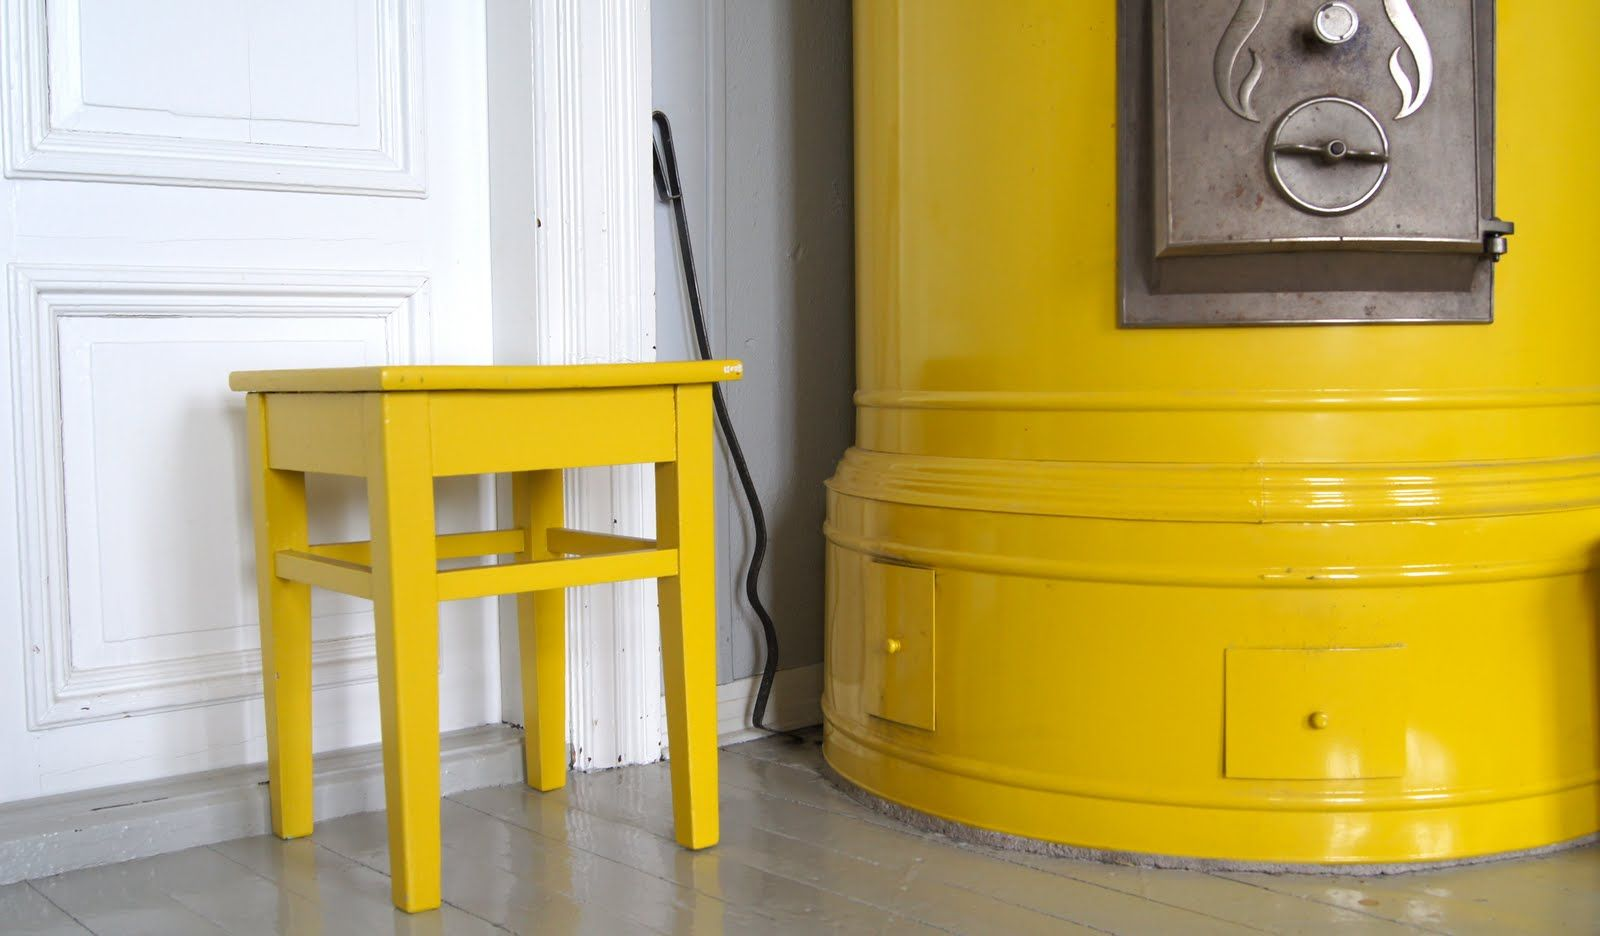 Bold yellow oven